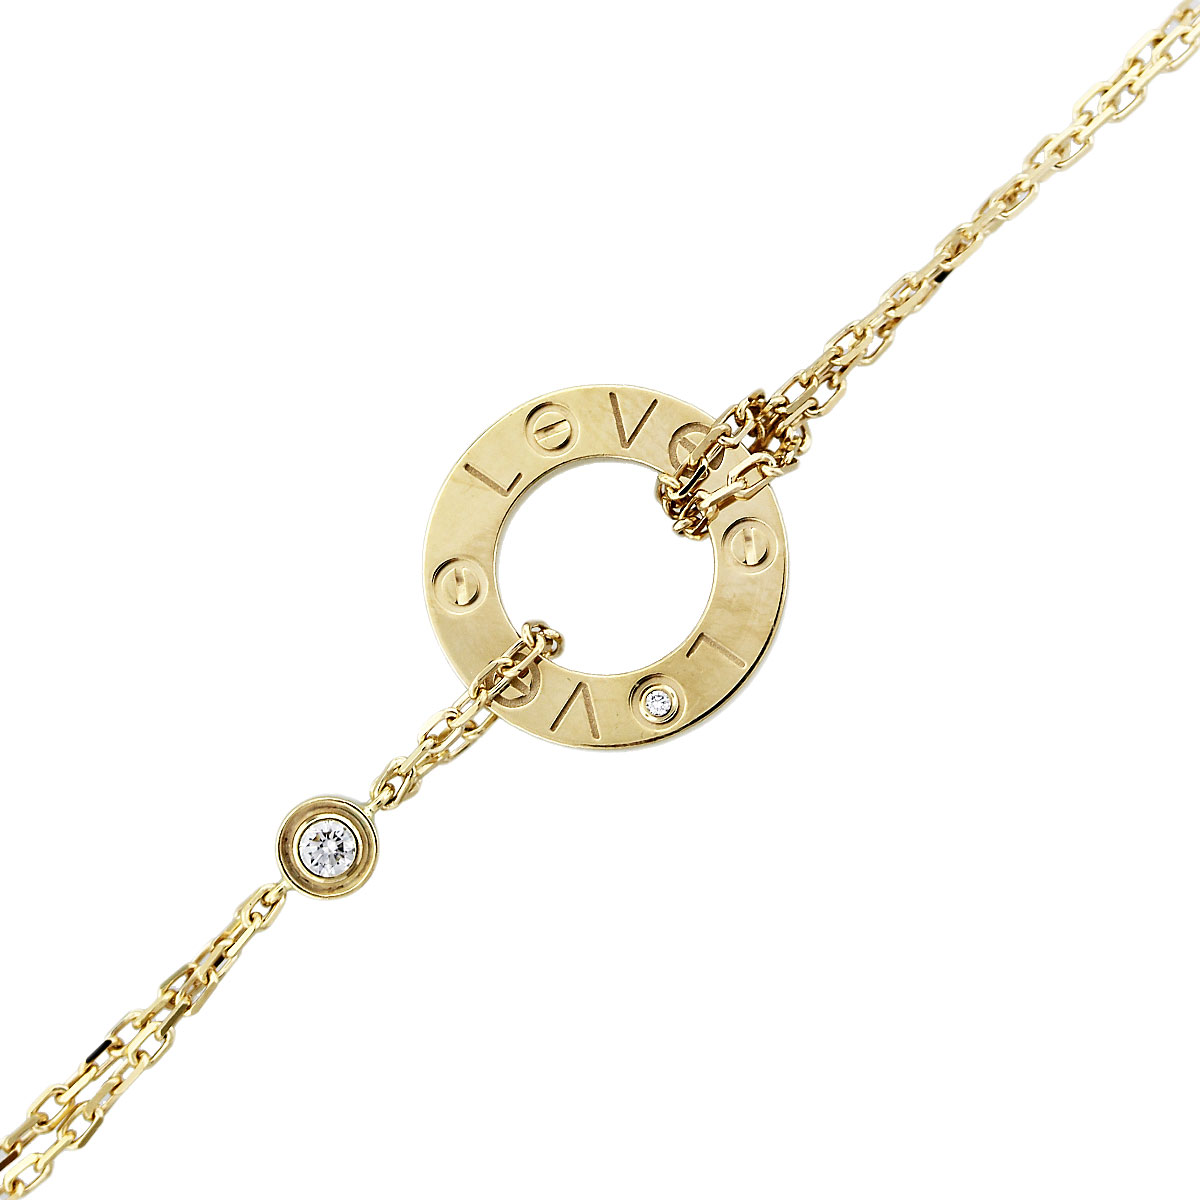 Cartier Love Diamond Chain Bracelet In Yellow Gold. Cushion Cut Earrings. Grandchild Bracelet. Arrow Bracelet. Forever Necklace. Where To Buy Bangle Bracelets. Wood Engagement Rings. Mosaic Watches. Anchor Pendant